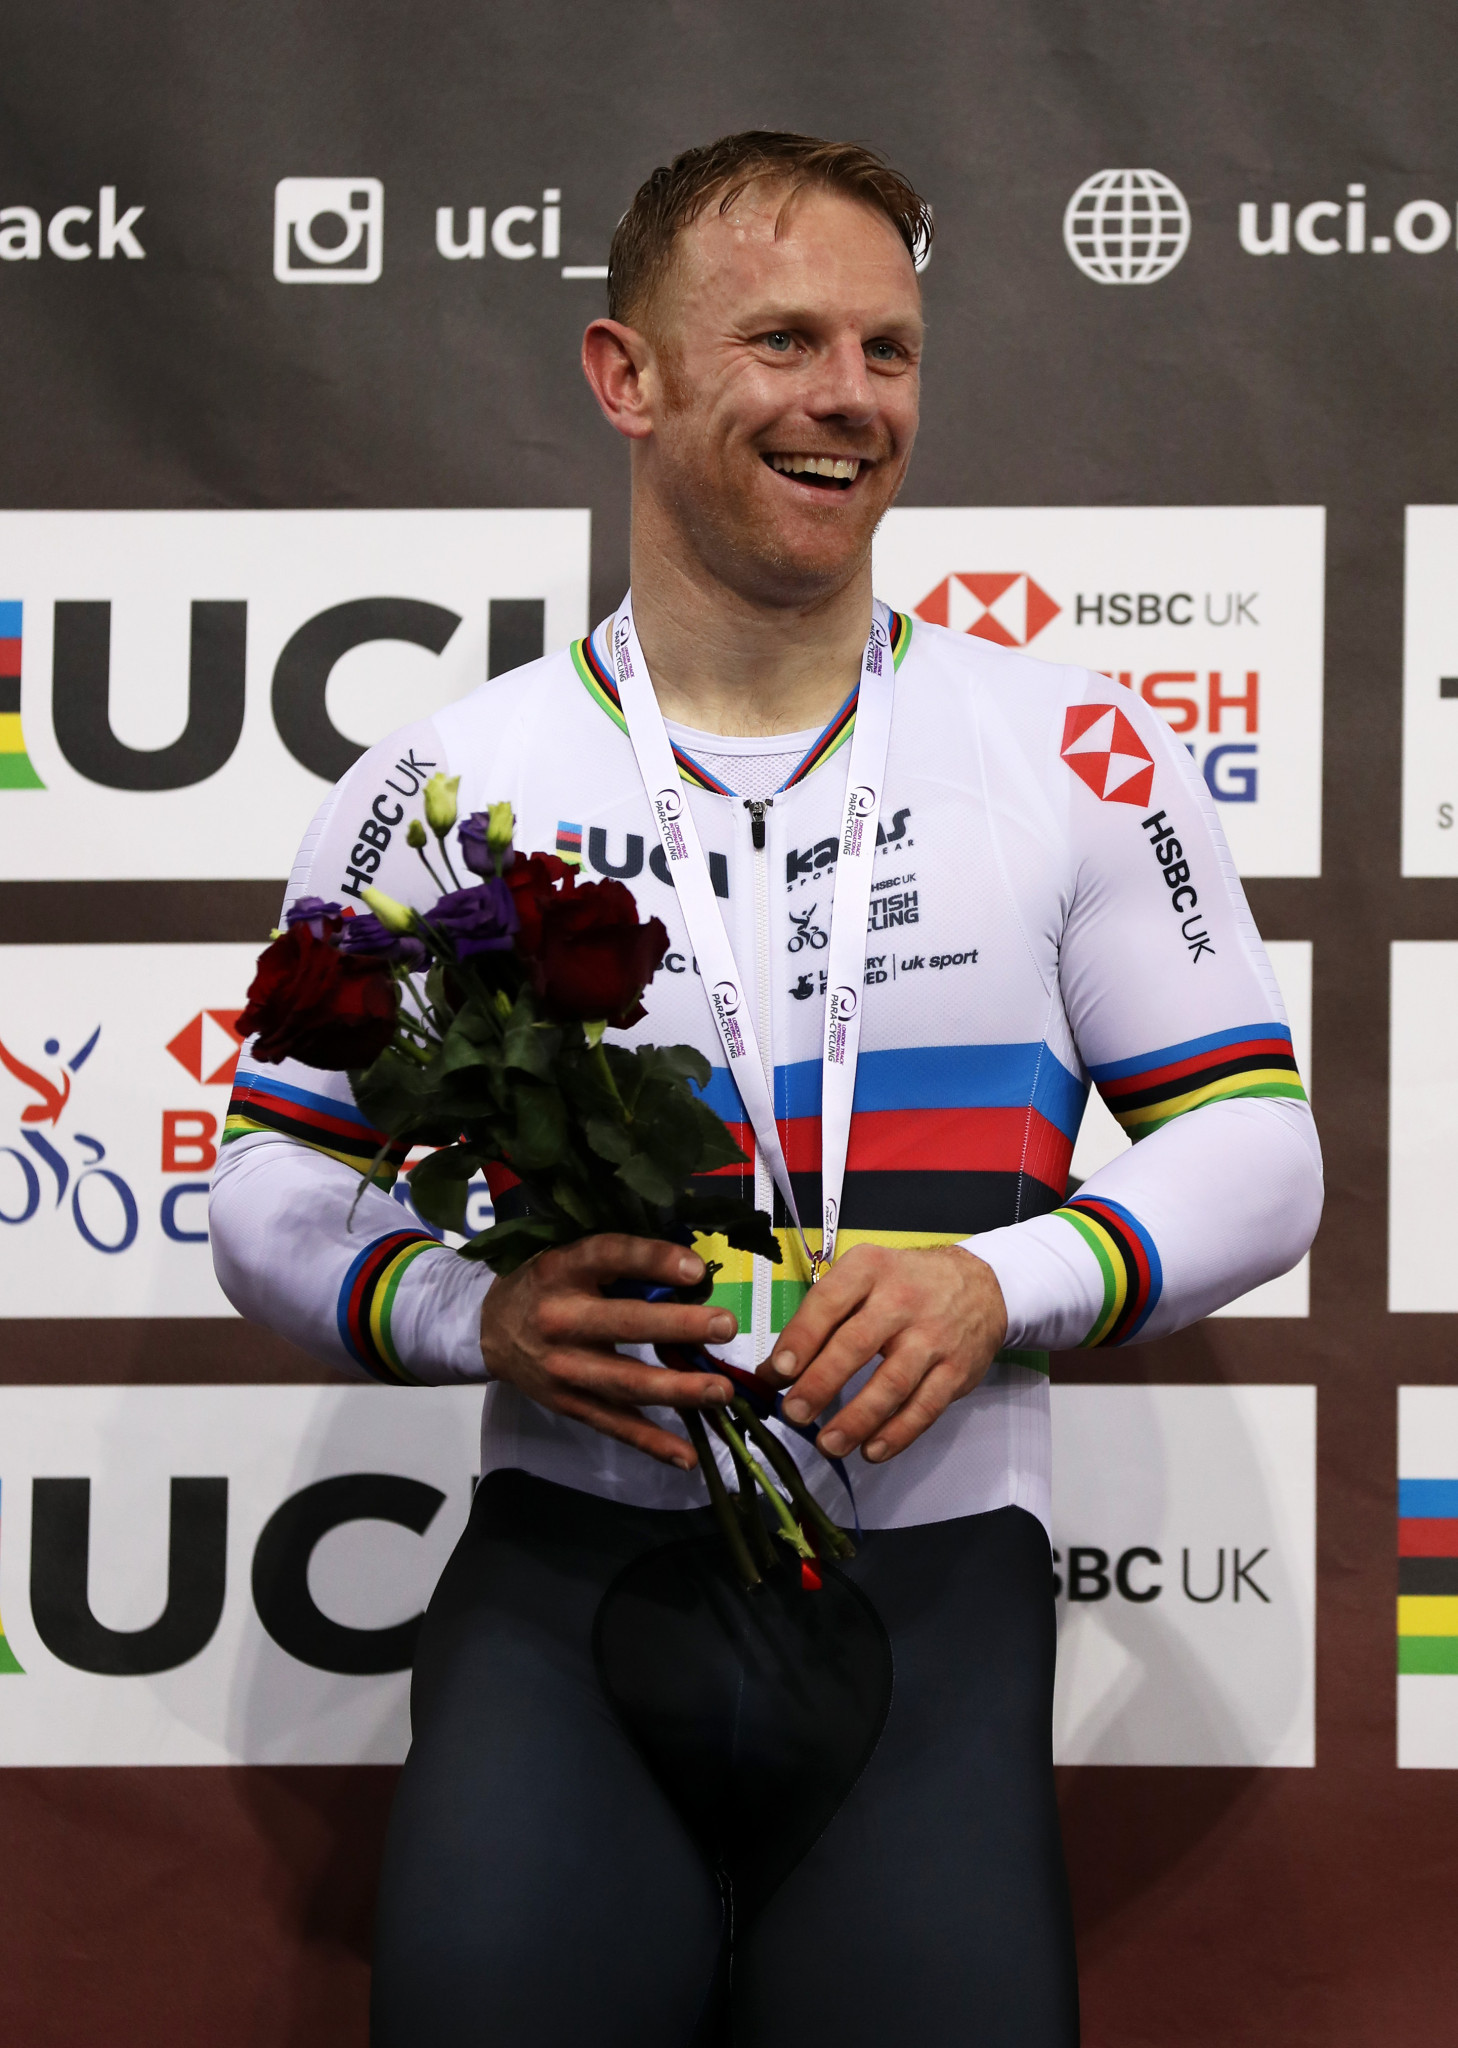 Jody Cundy gained Great Britain's second gold of the day in the men's C4 one kilometre time trial ©Getty Images